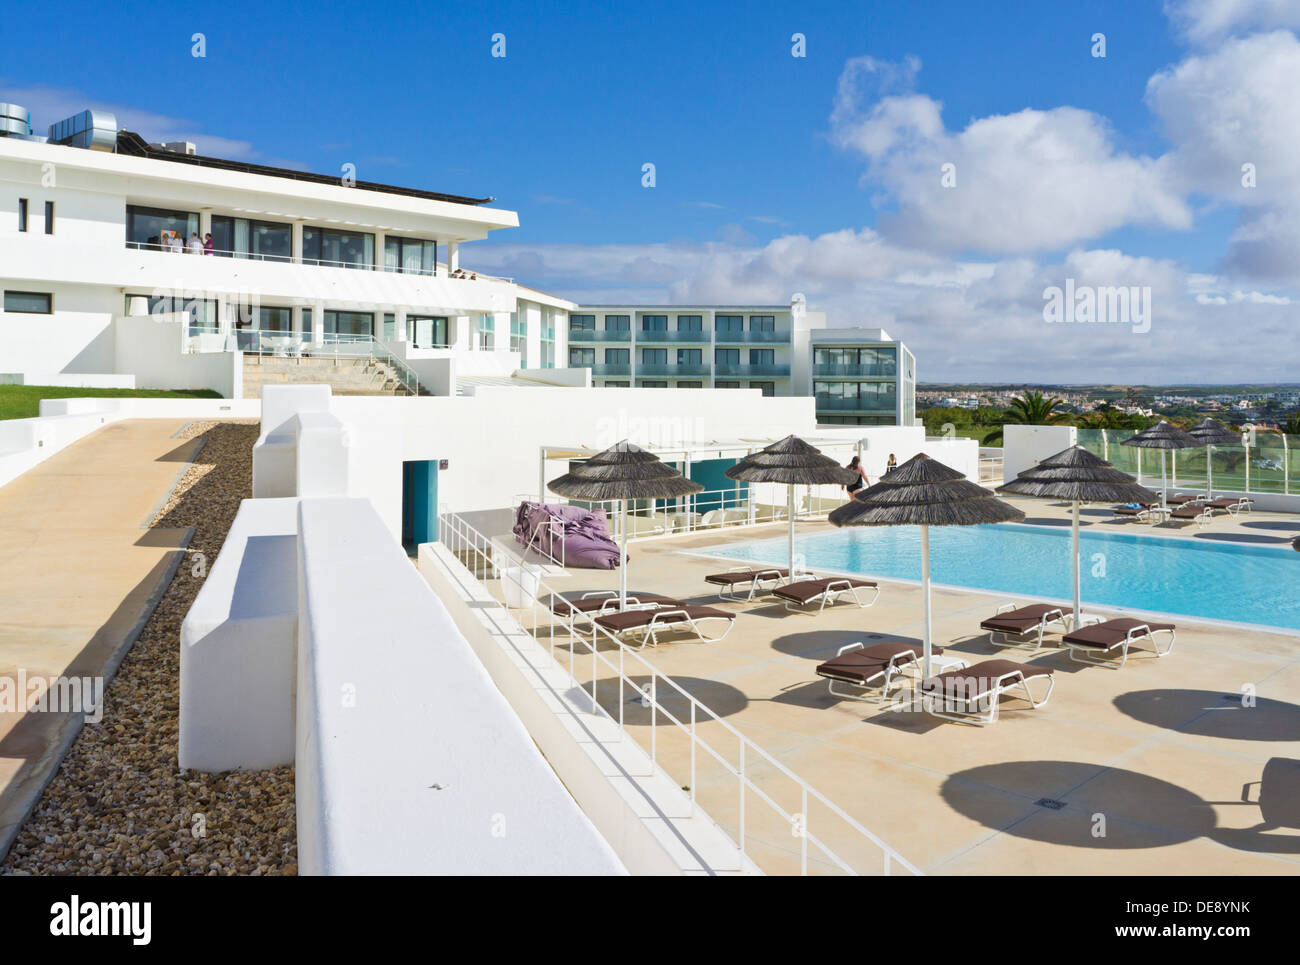 Memmo baleeira sagres hotel swimming pool patio area for Swimming pool area